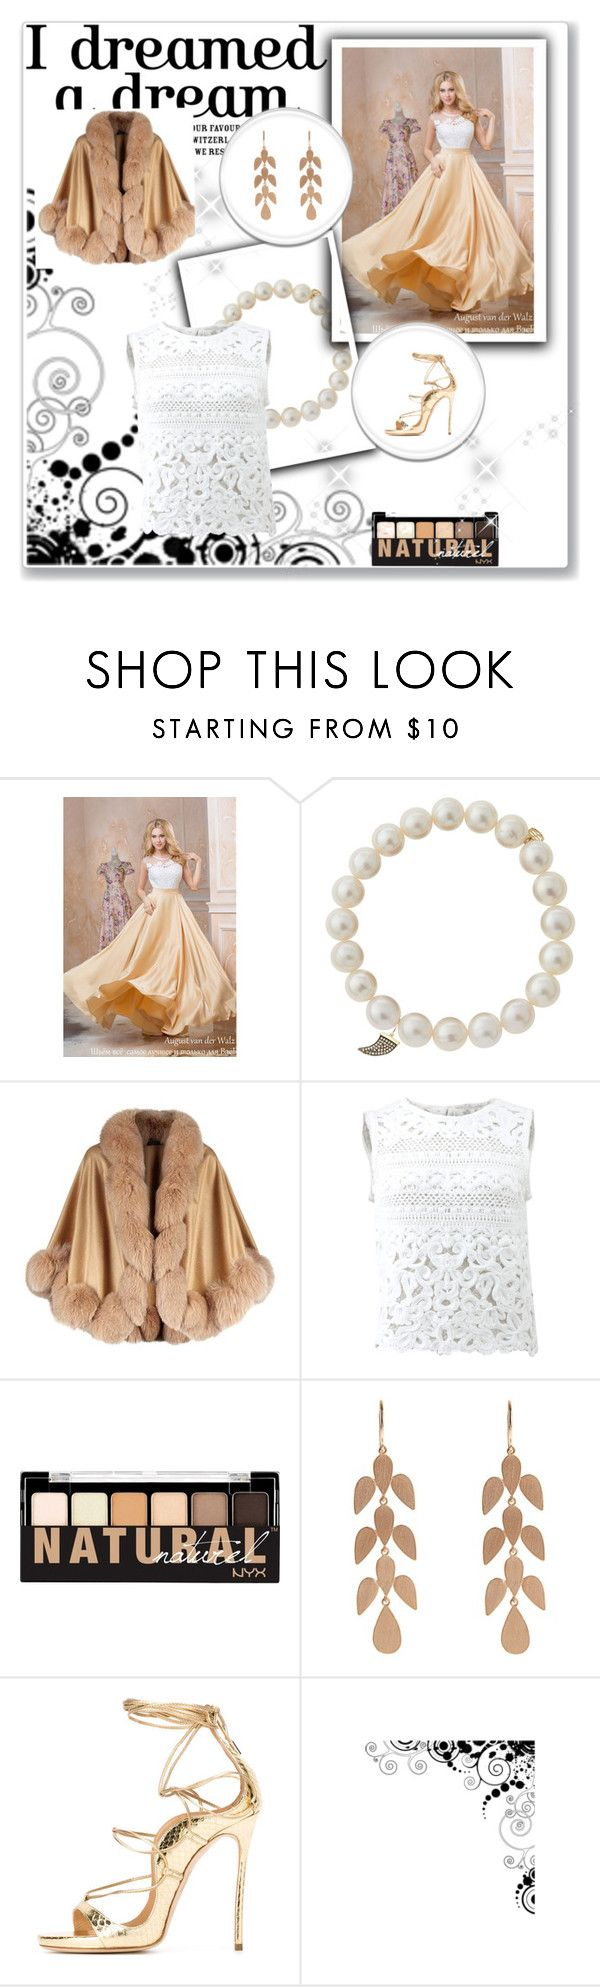 """""""Noche fria"""" by amanda-regolini ❤ liked on Polyvore featuring Sydney Evan, Harrods, Ermanno Scervino, NYX and Irene Neuwirth"""